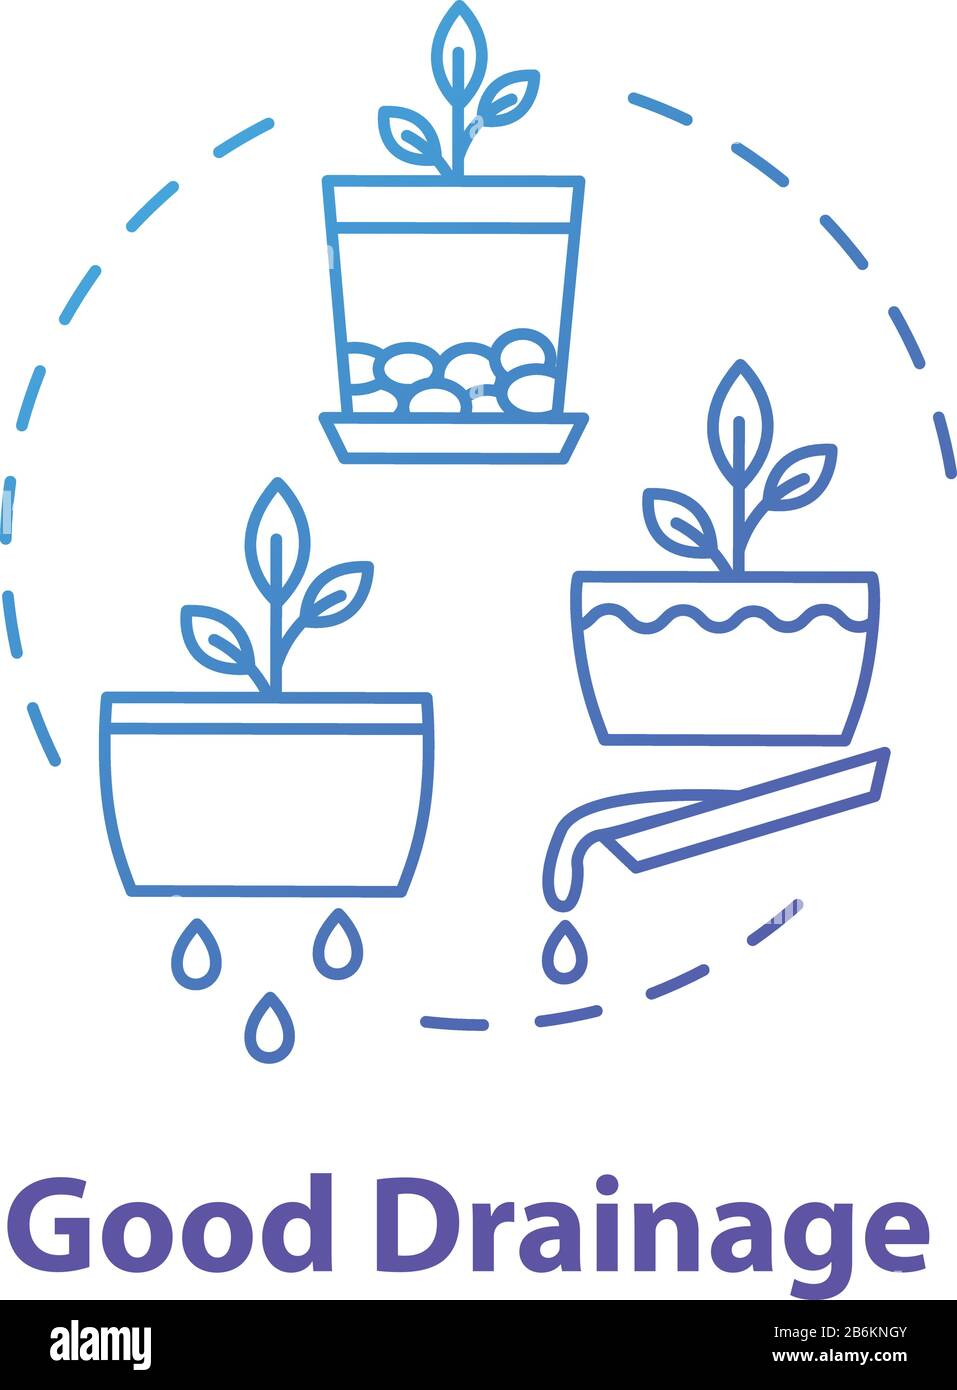 Good drainage concept icon. Home gardening tip. Houseplants caring. Plant nursing, floristry hobby idea thin line illustration. Vector isolated Stock Vector